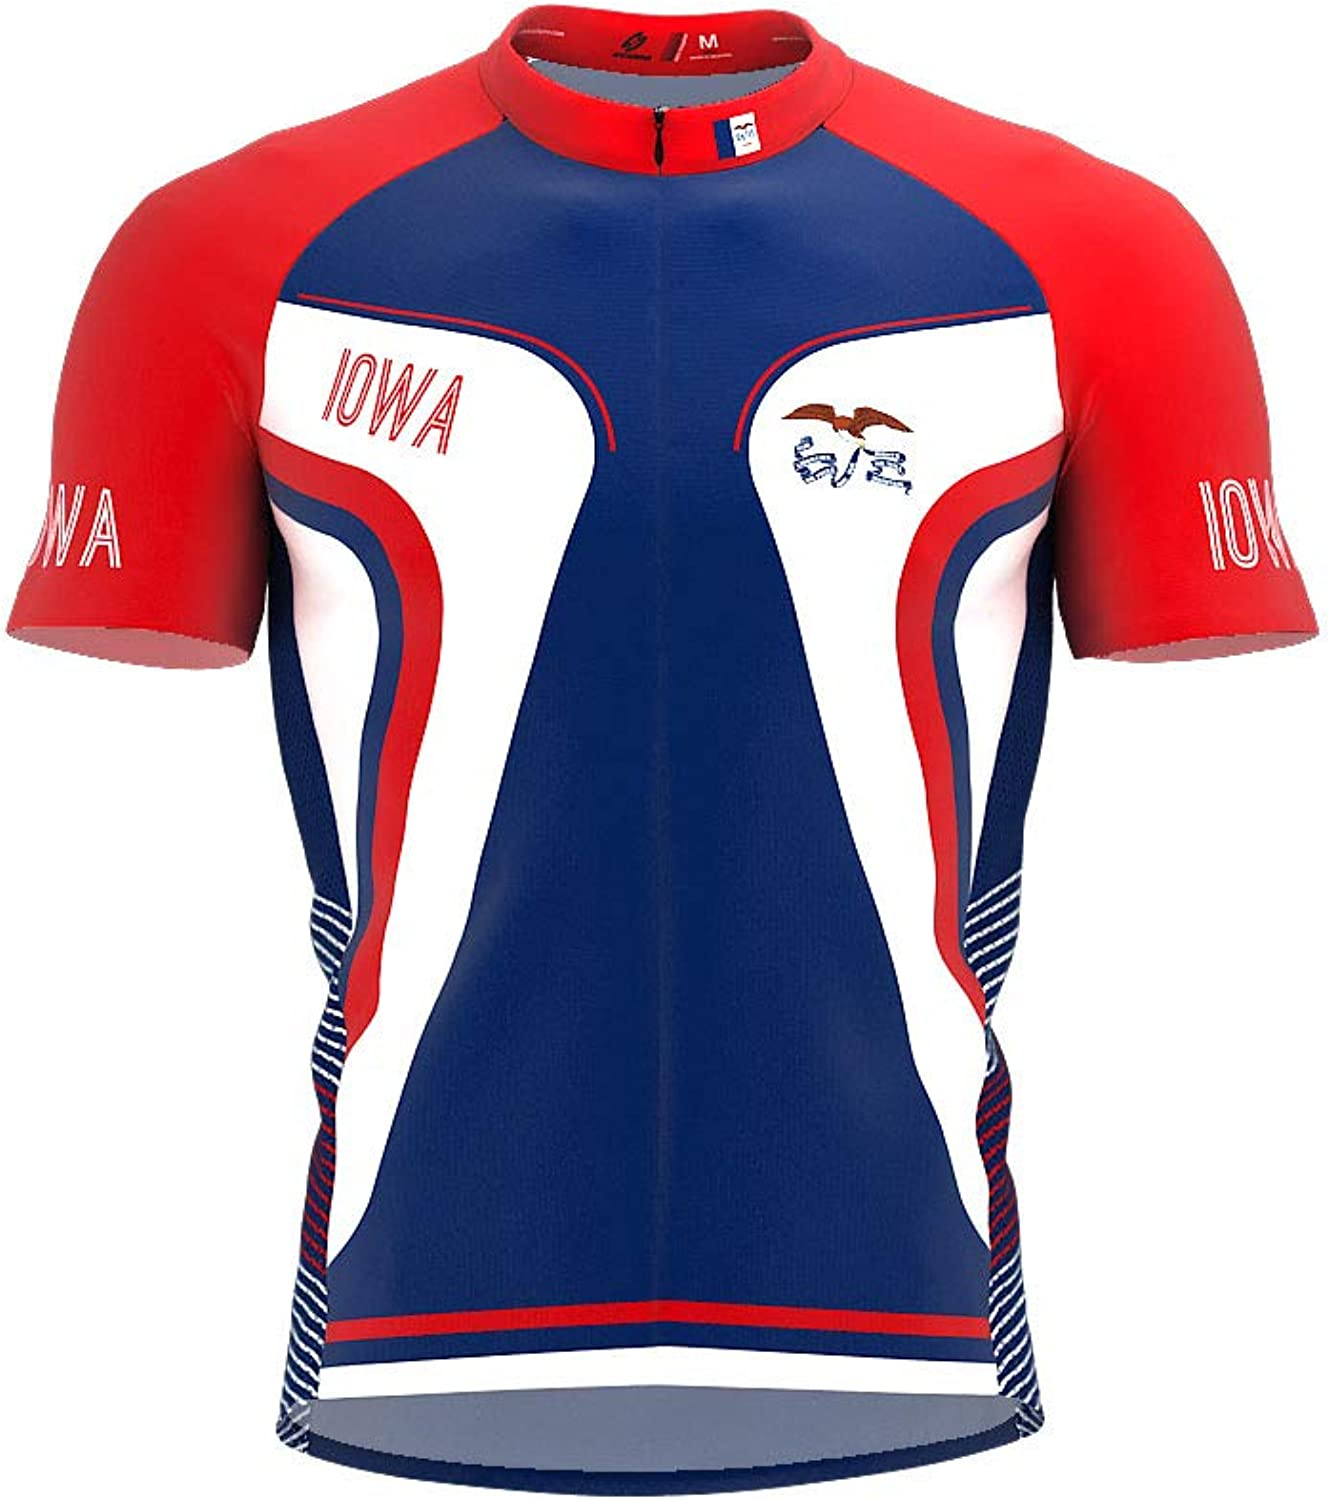 ScudoPro Iowa Bike Short Sleeve Cycling Jersey for Men